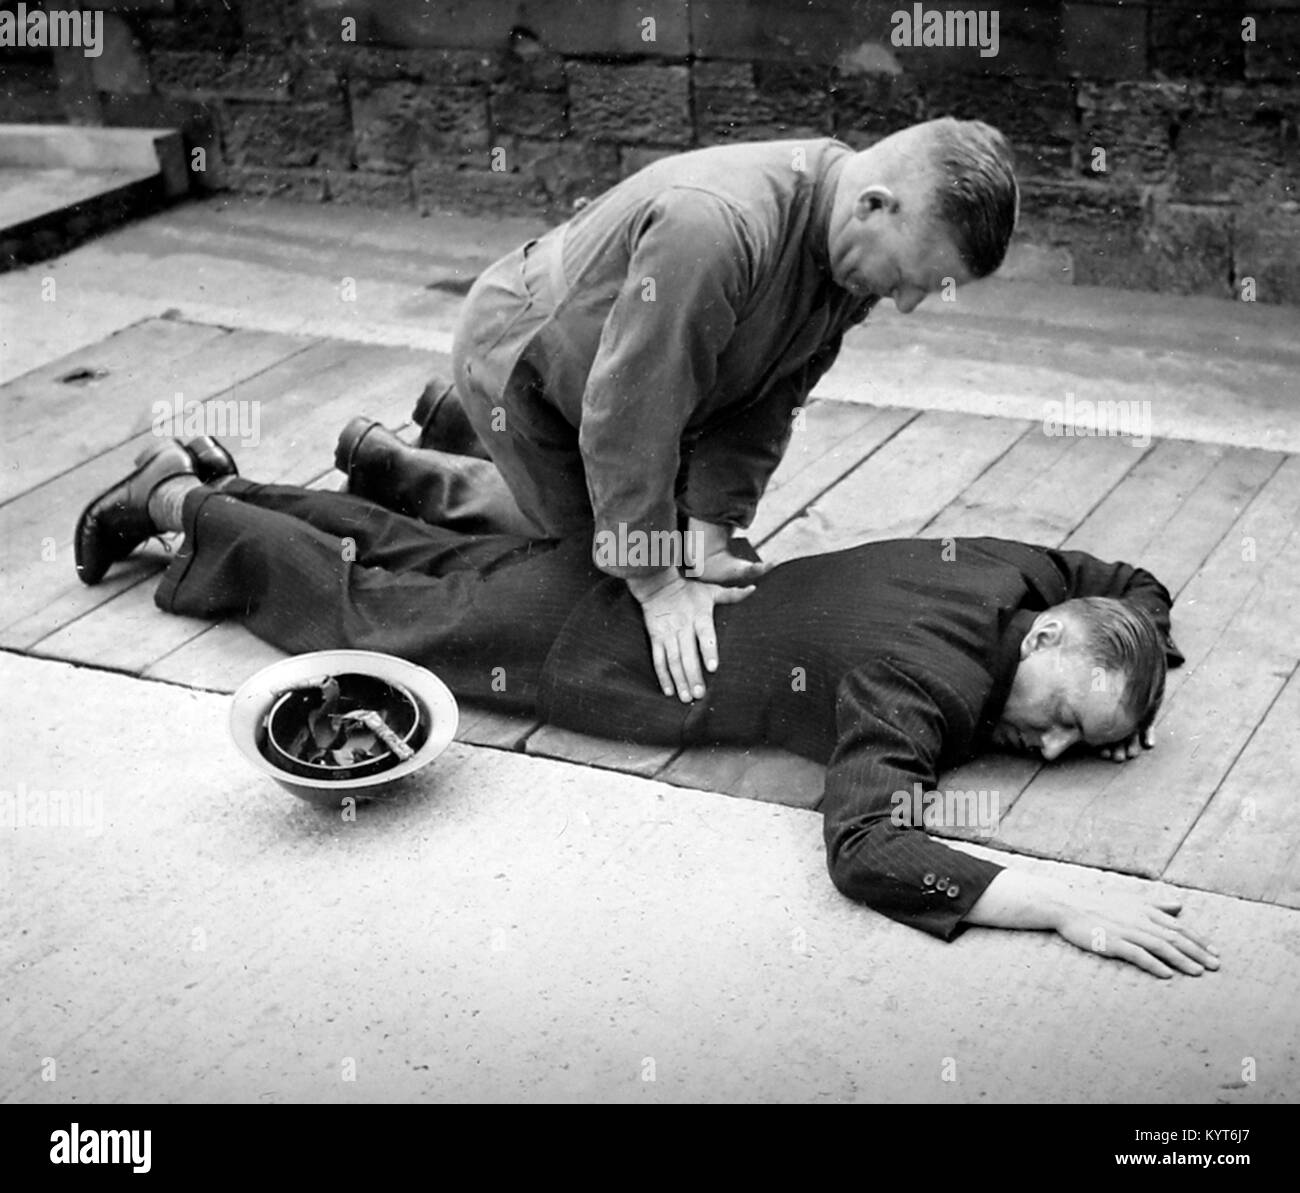 Applying artificial respiration, ARP training exercise during WW2 - Stock Image